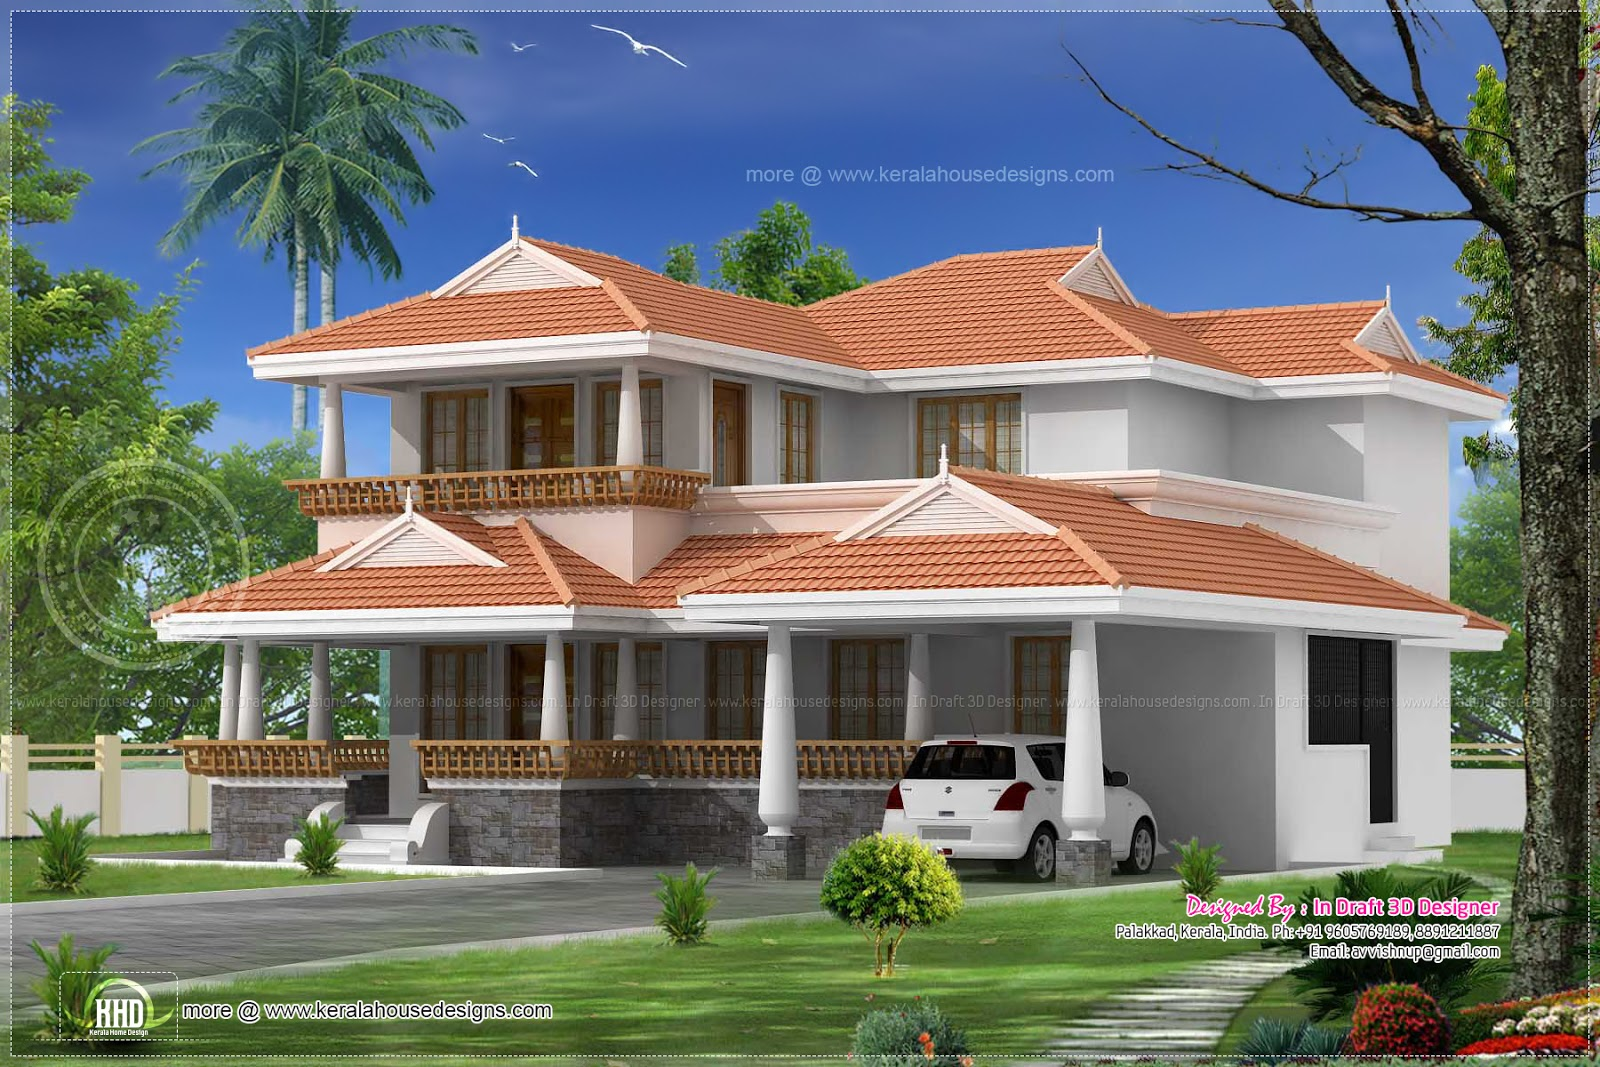 4 bed room kerala traditional villa 2615 sq ft kerala for Kerala style villa plans